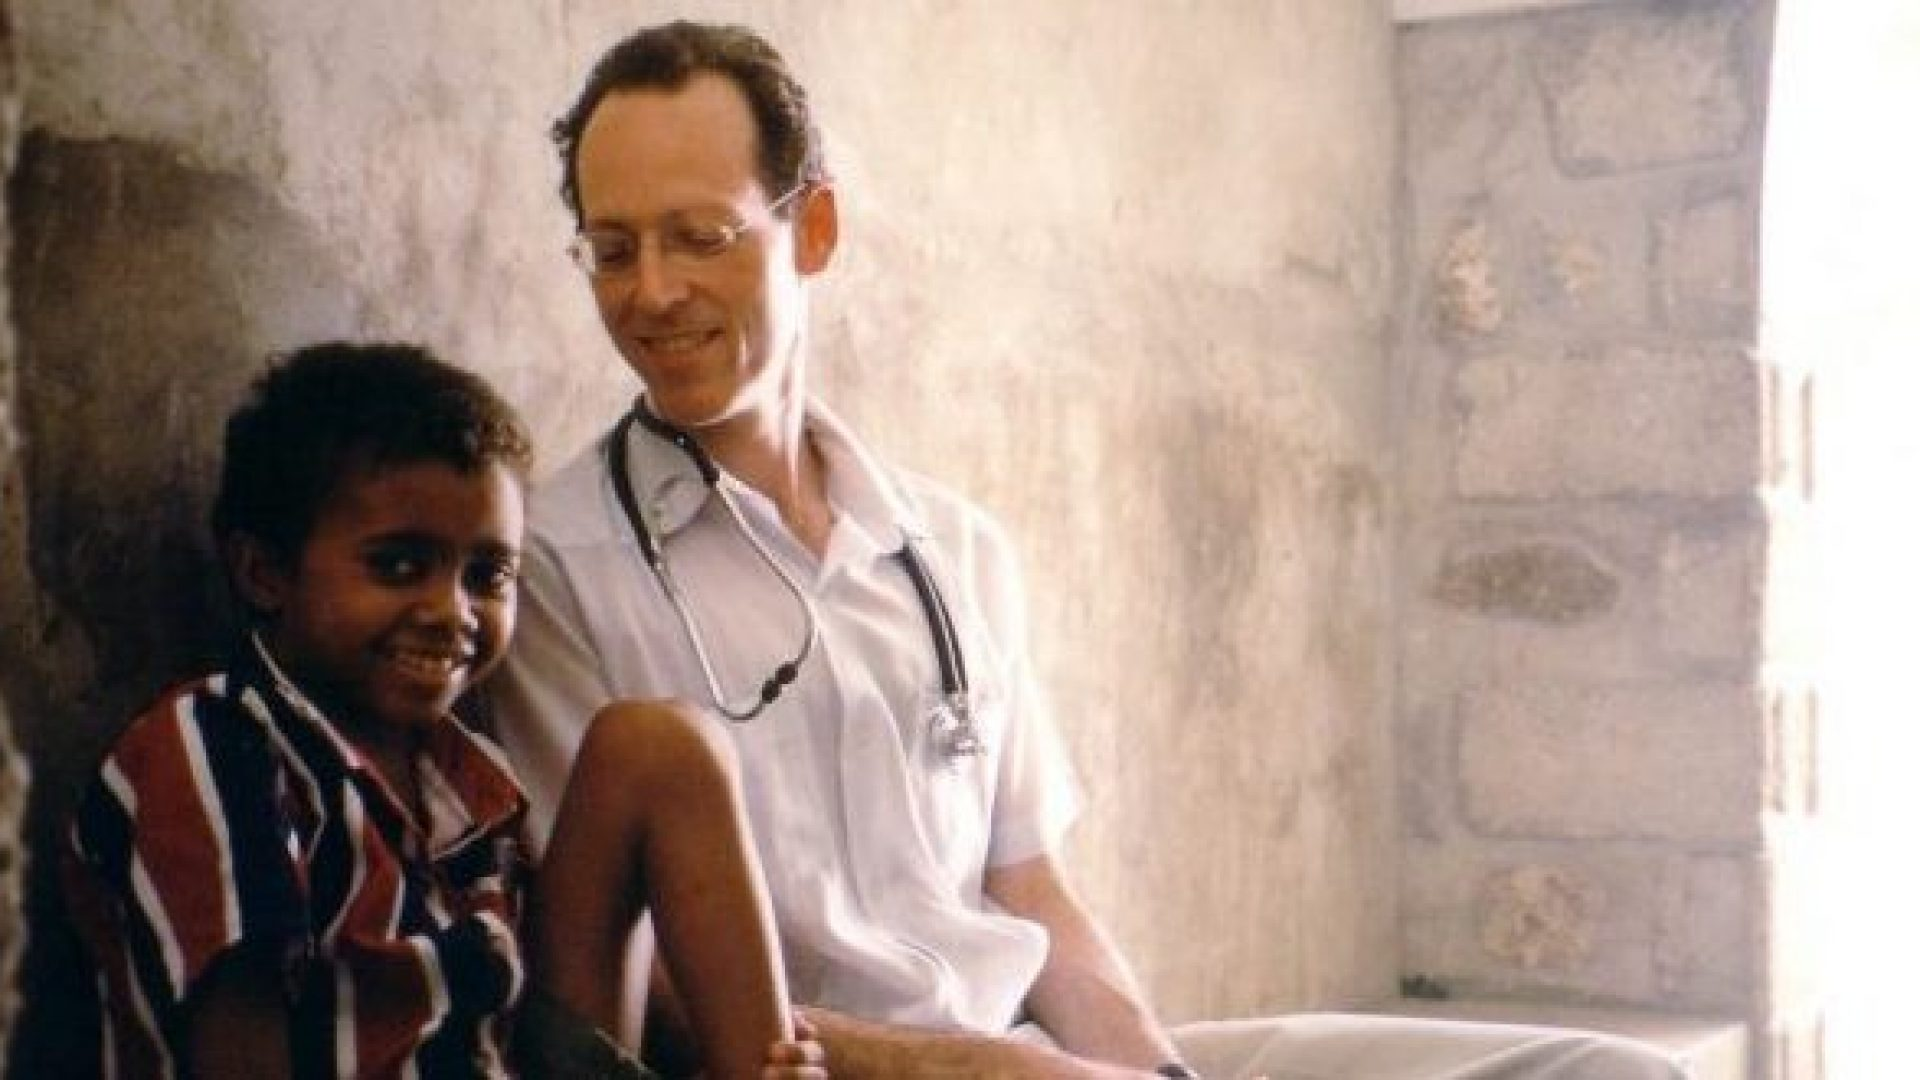 Dr. Paul Farmer appears in Bending the Arc by Kief Davidson and Pedro Kos, an official selection of the Documentary Premieres program at the 2017 Sundance Film Festival. Courtesy of Sundance Institute.